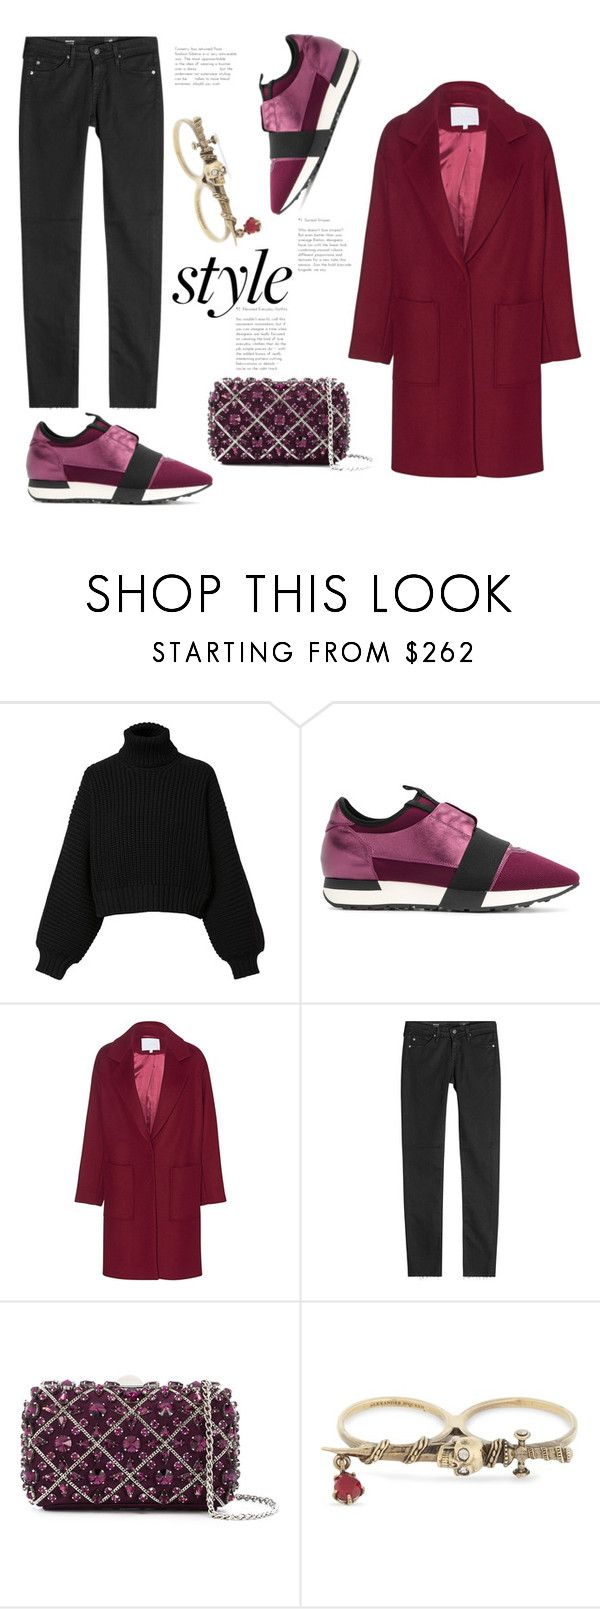 """""""NYFW - Blogger Style"""" by badassbabyboomer ❤ liked on Polyvore featuring Diesel, Balenciaga, Lala Berlin, AG Adriano Goldschmied, Rodo, Alexander McQueen and NYFW"""